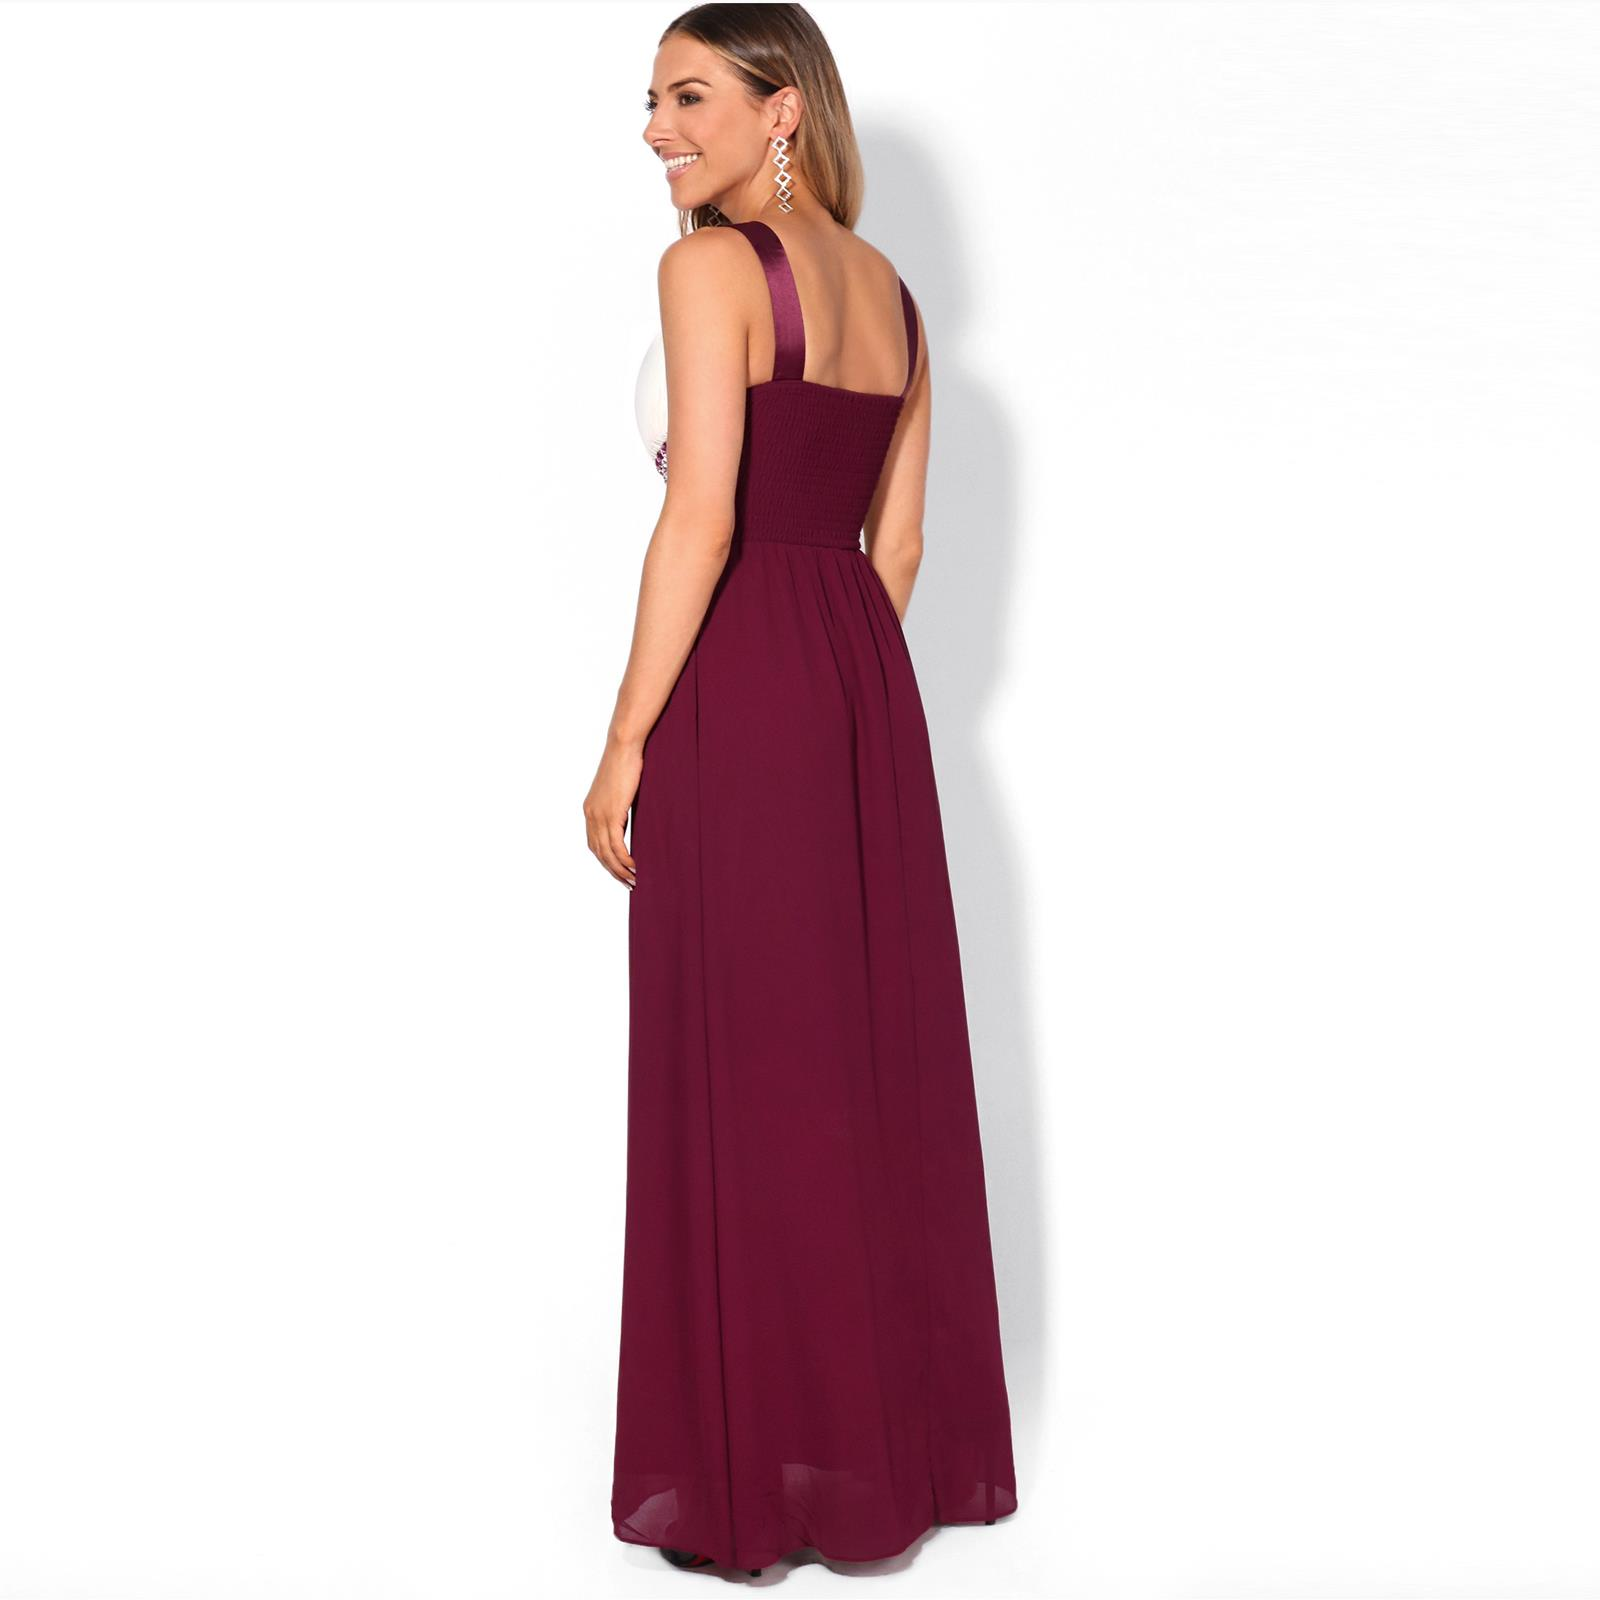 Womens Diamante Maxi Dress Fitted Long Fishtail Party Bridesmaid Wedding Prom